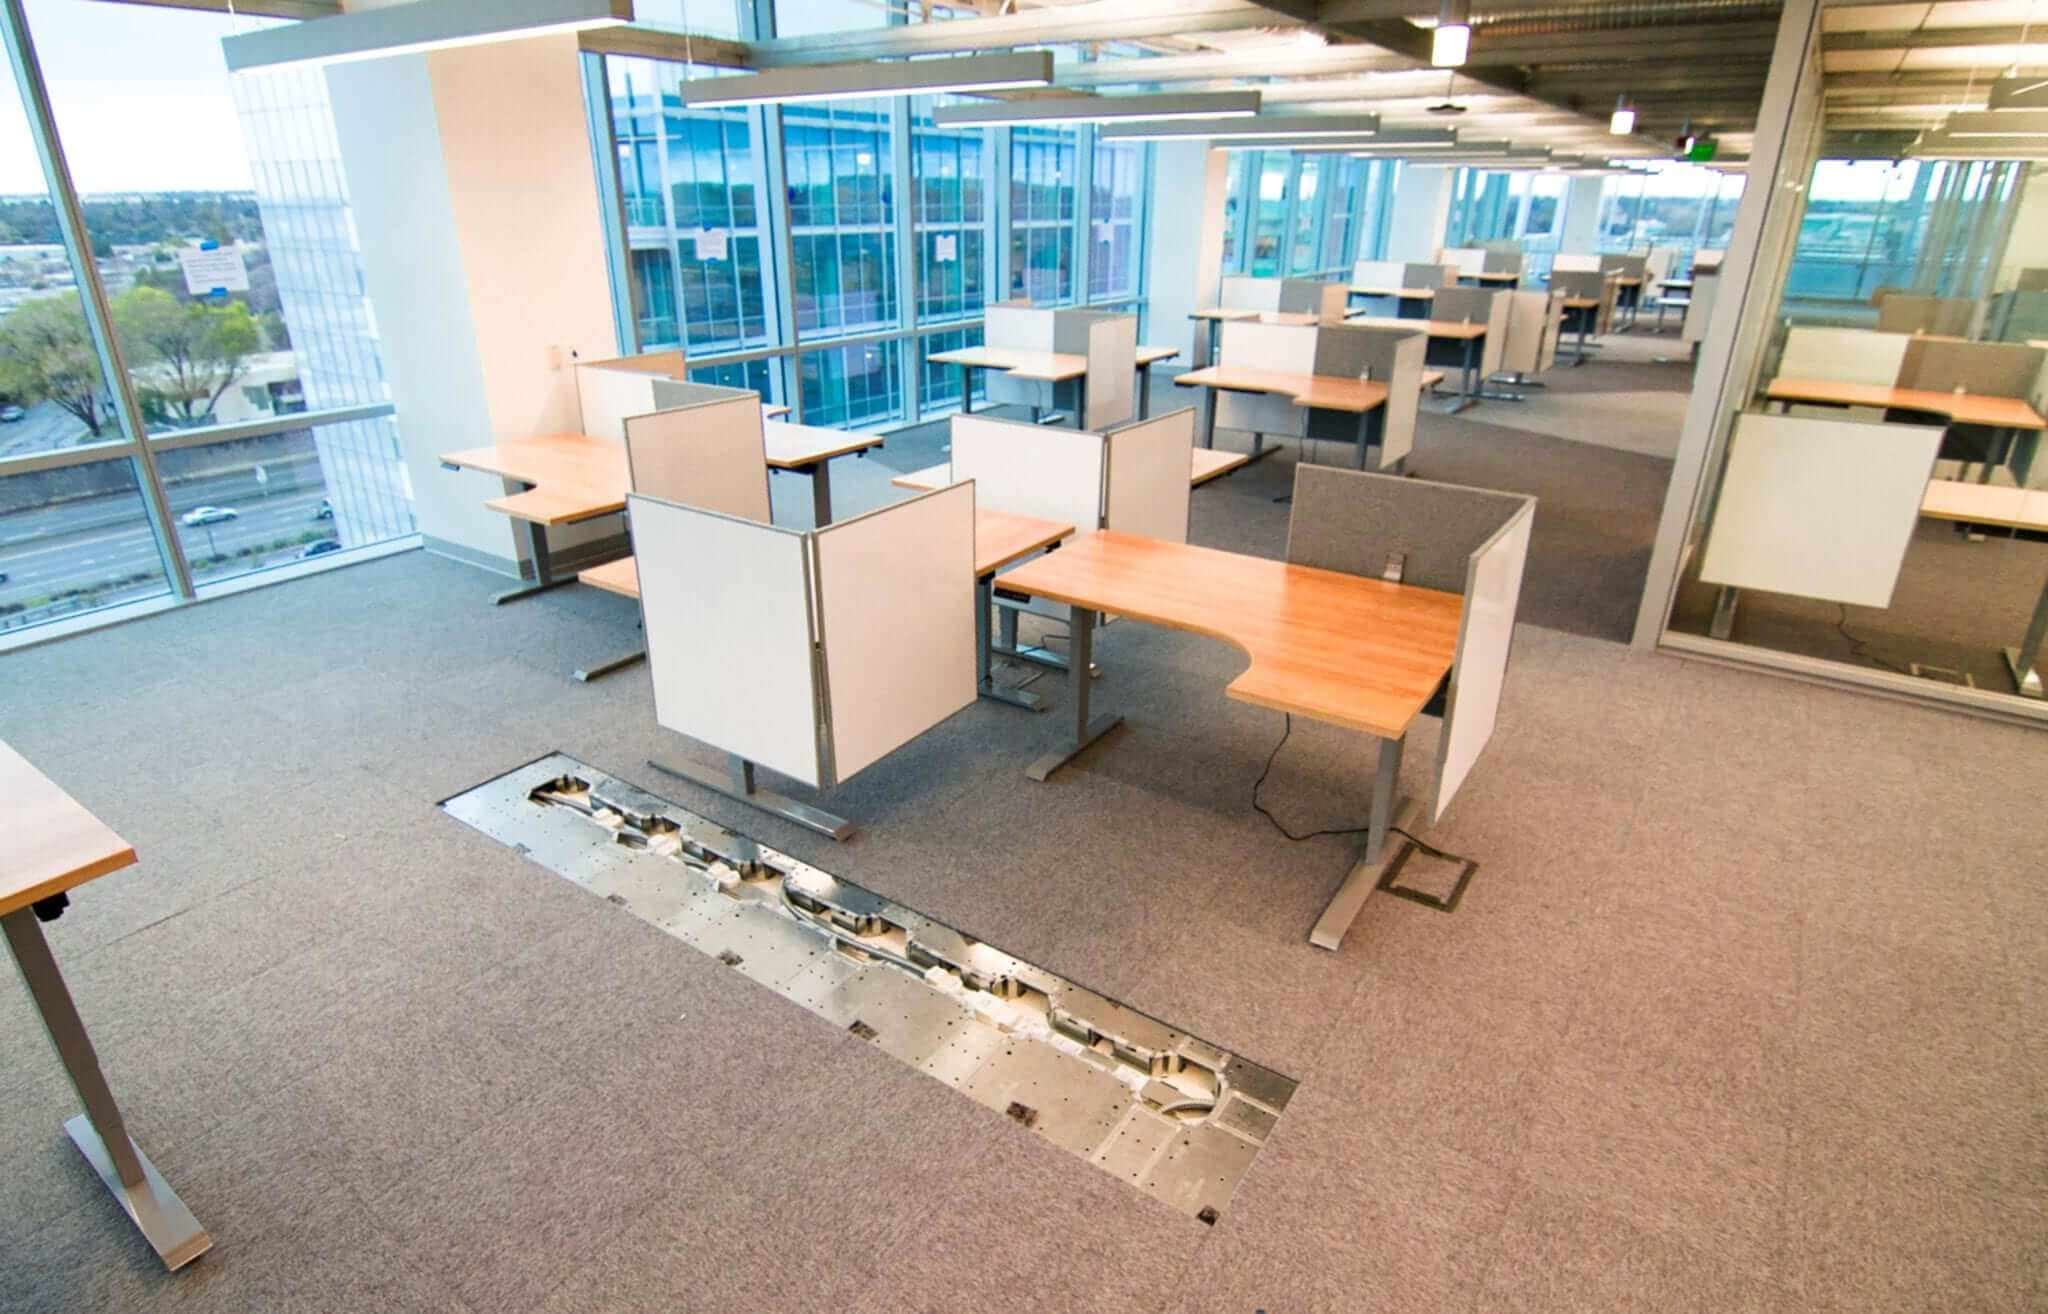 Low Profile Raised Flooring in Commercial Offices